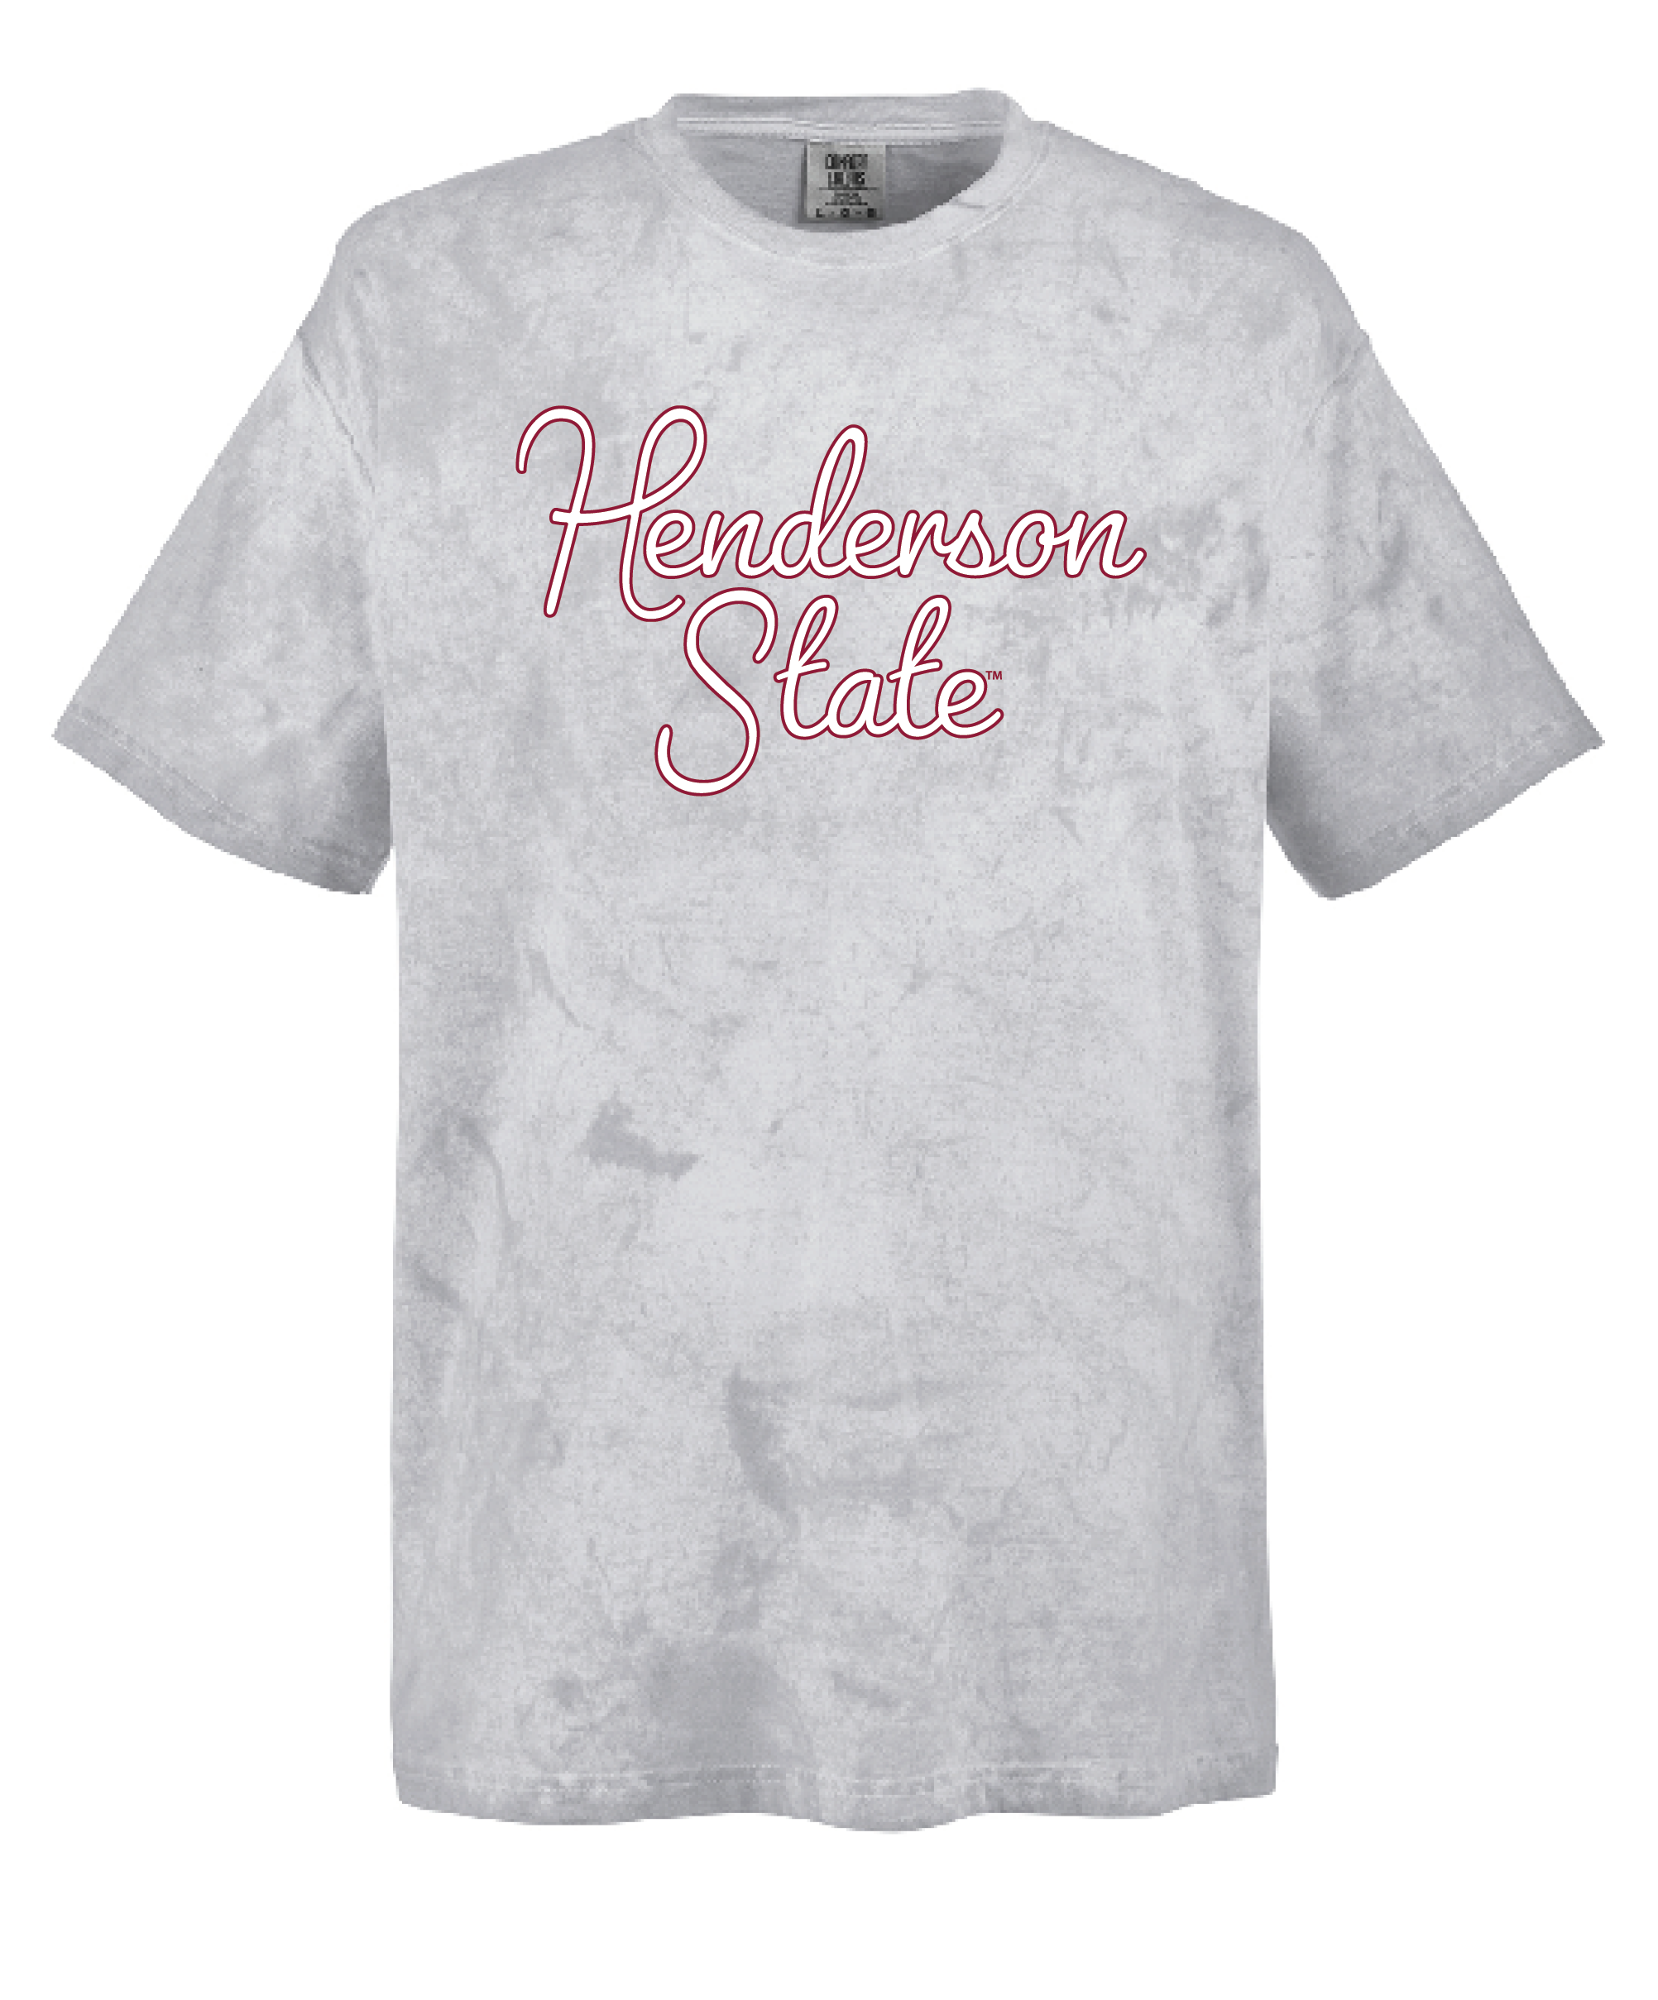 image of: Henderson State Comfort Colors Color Blast Short Sleeve T-Shirt